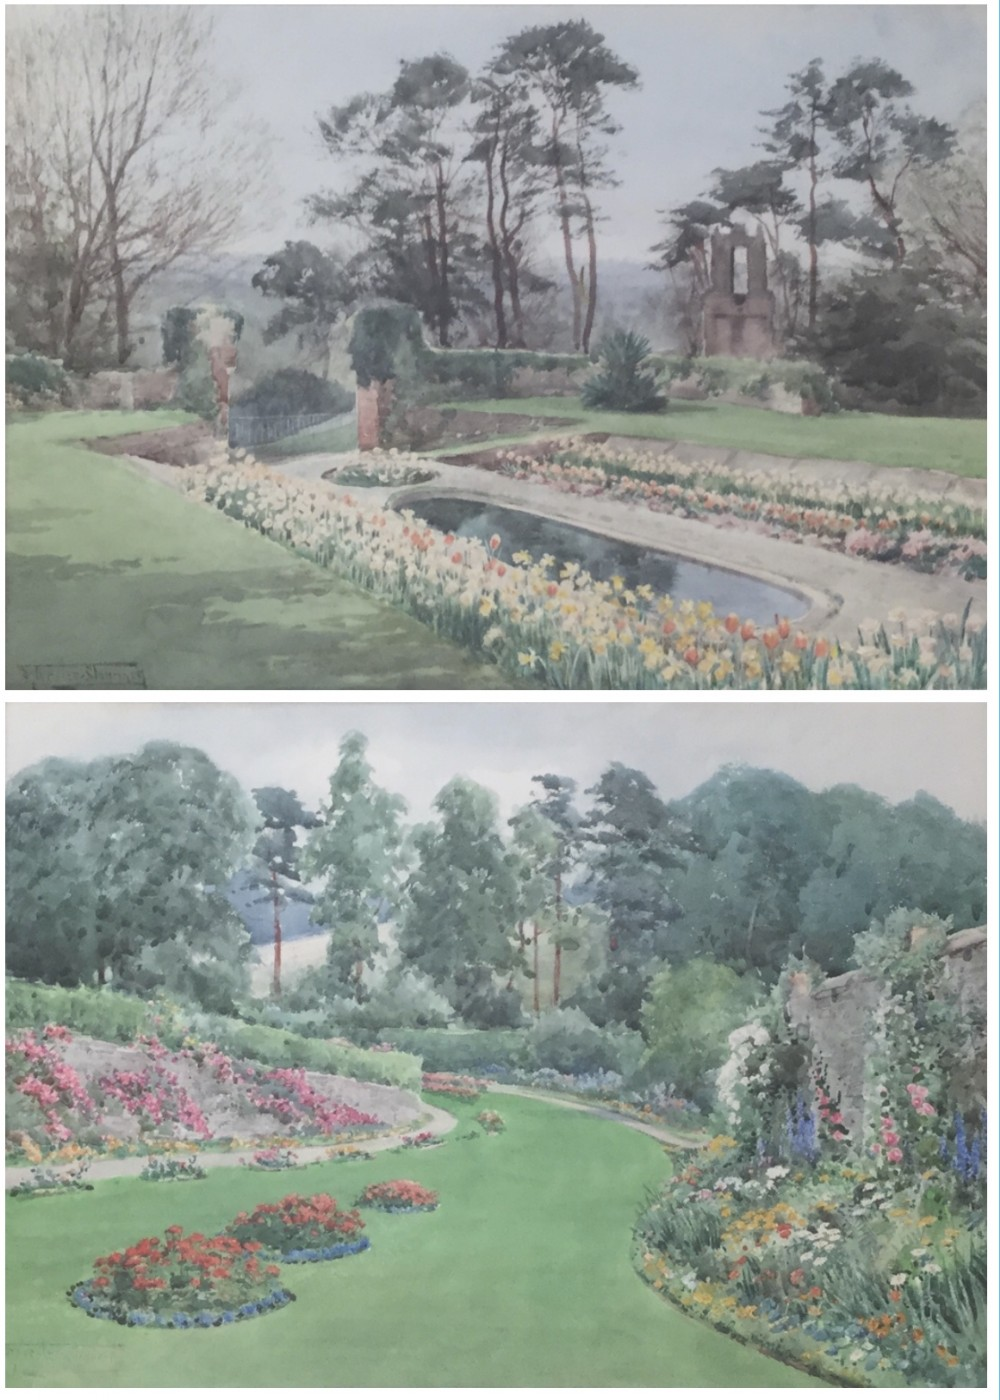 henry john sylvester stannard pair watercolours bishop castle gardens shropshire